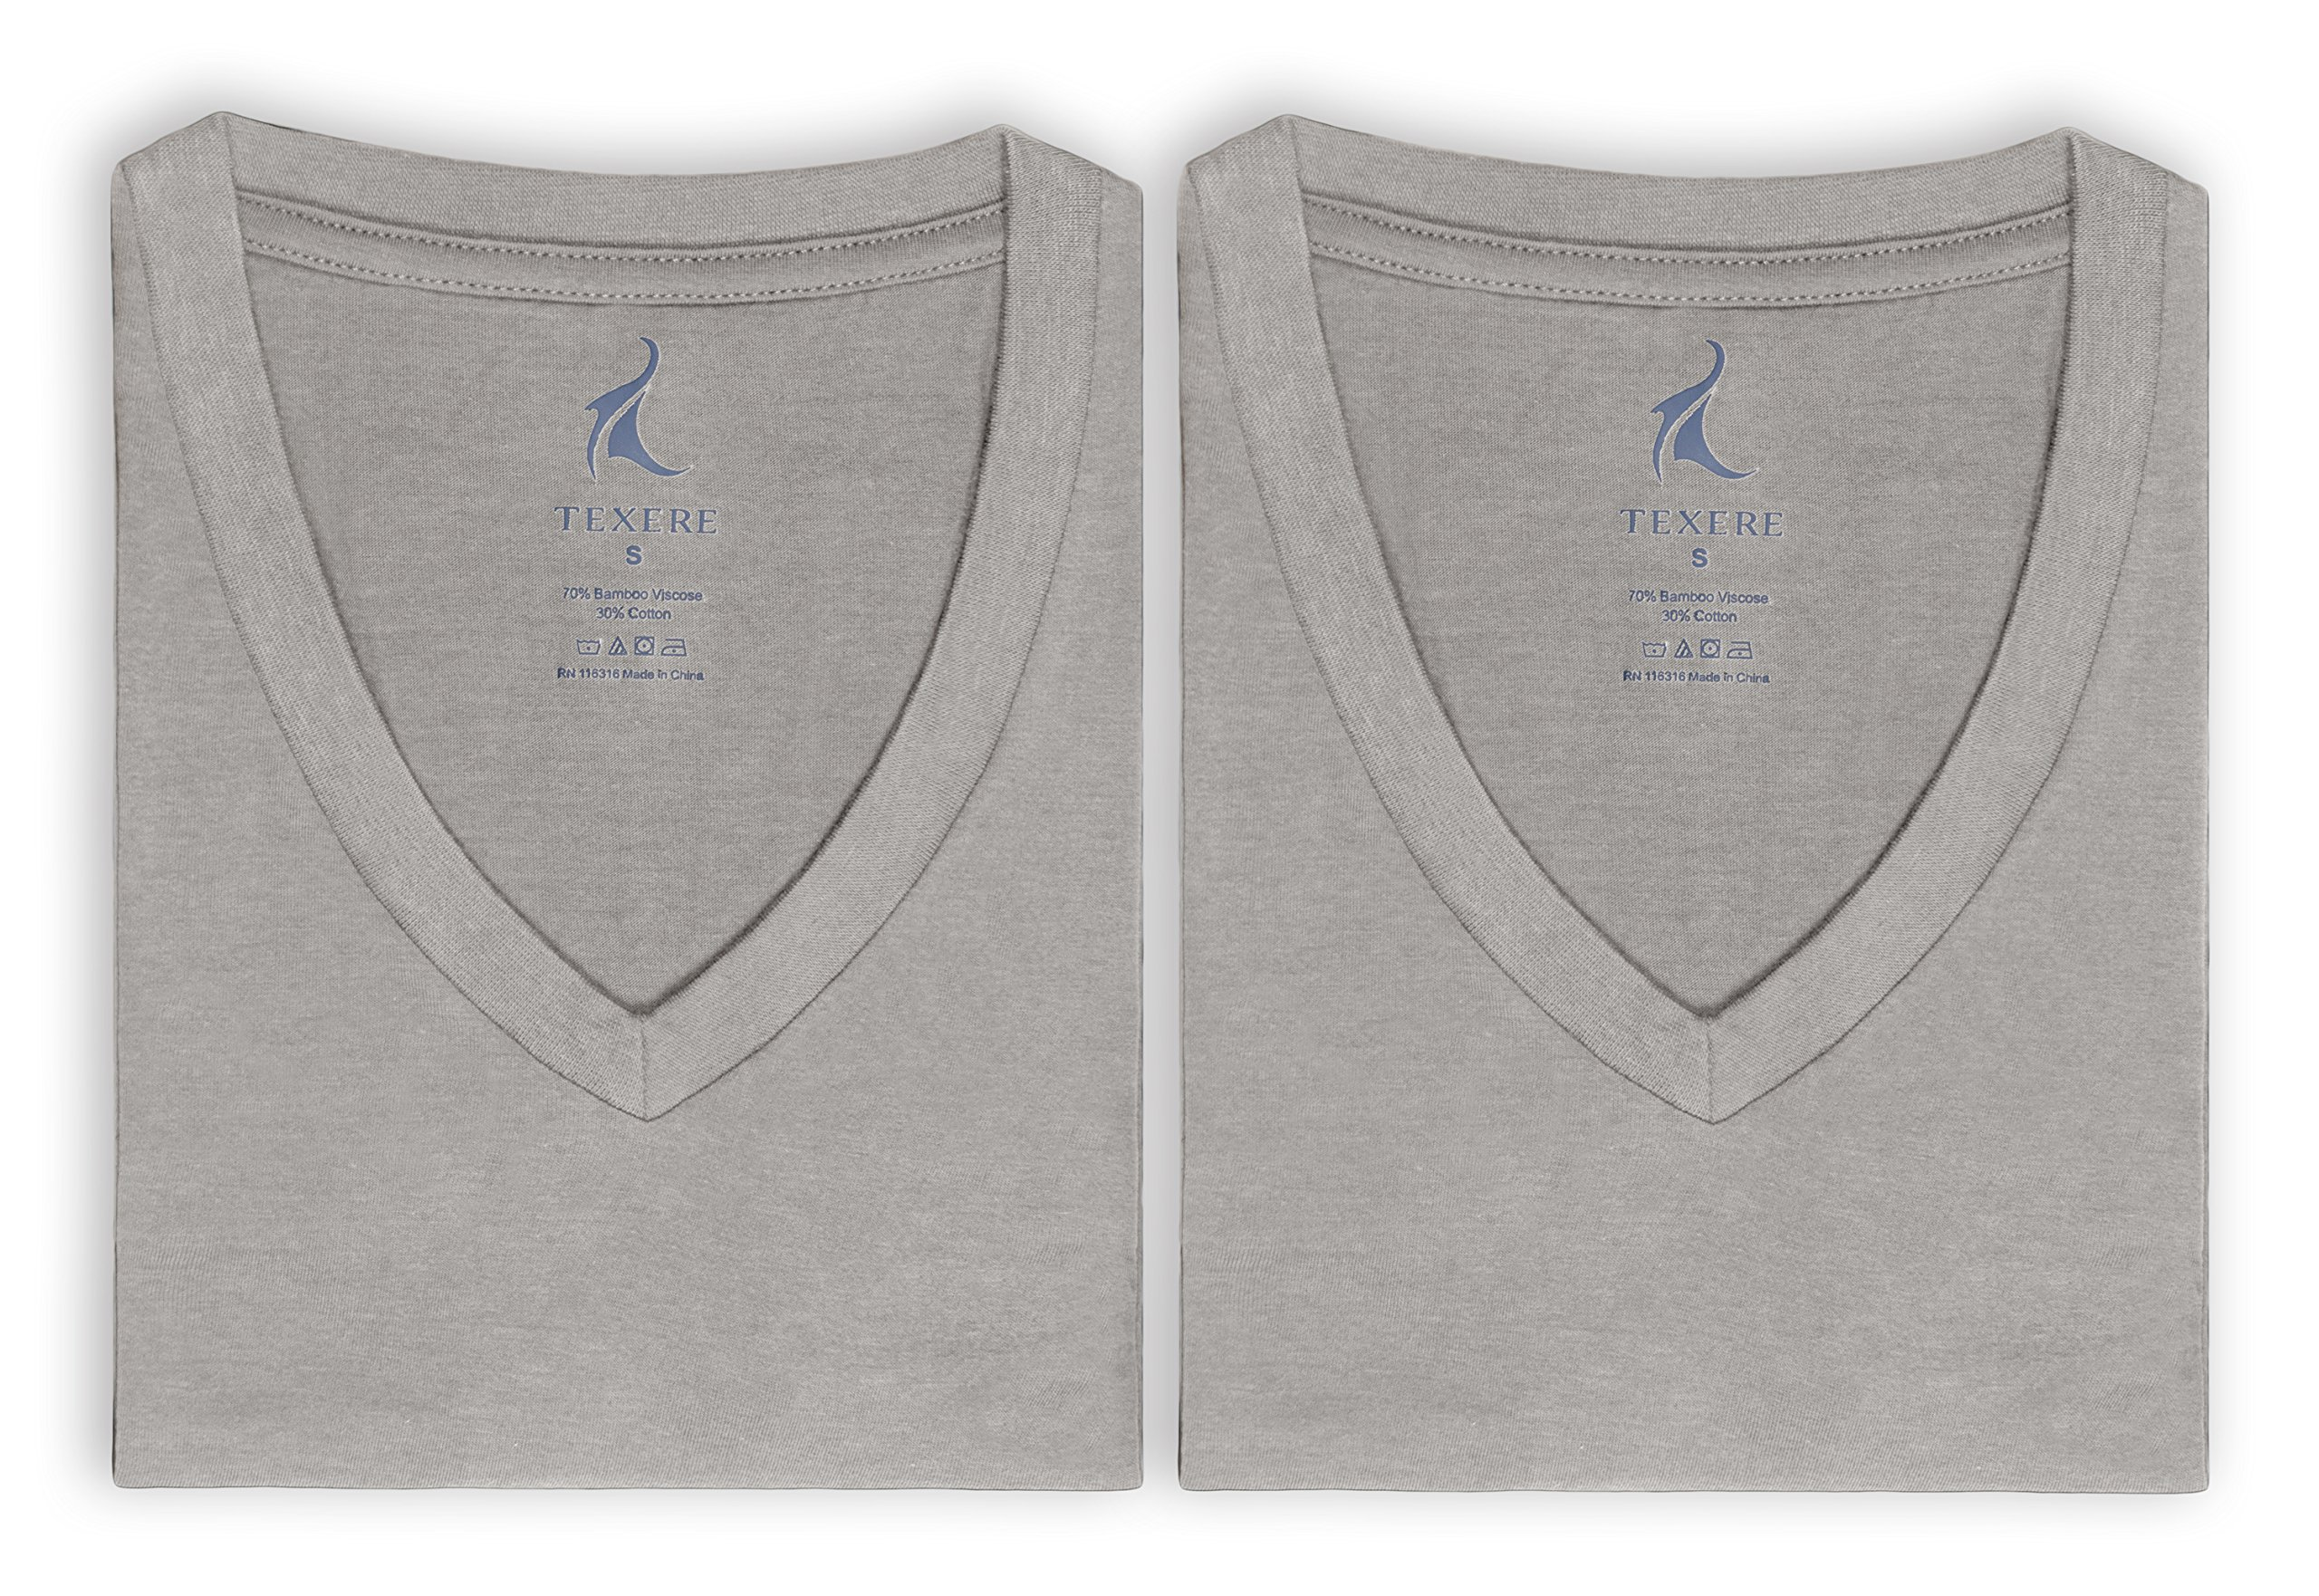 Texere Men's V-Neck 2 Pack Undershirt (Meio, Light Gray, XXLT) Fathers Day by TexereSilk